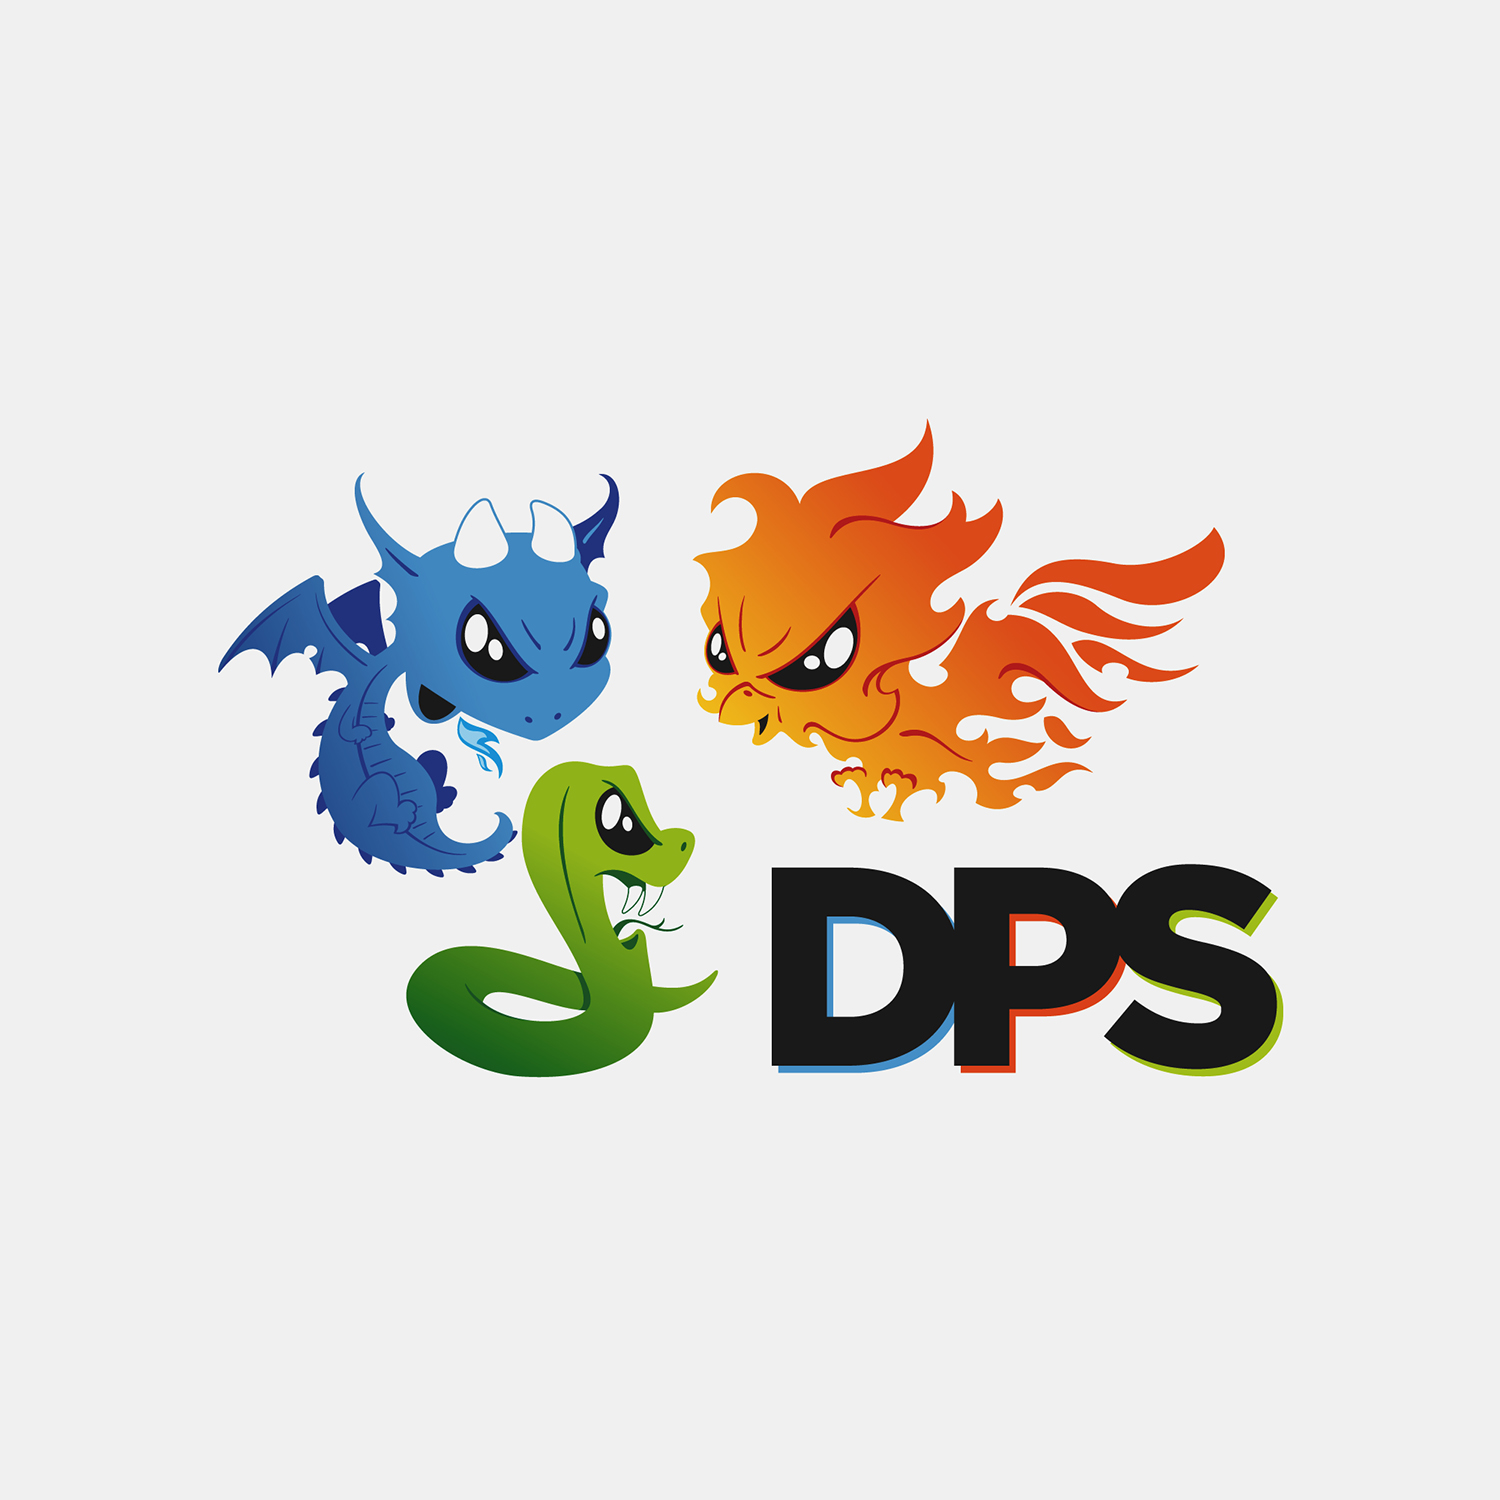 DPS logo design